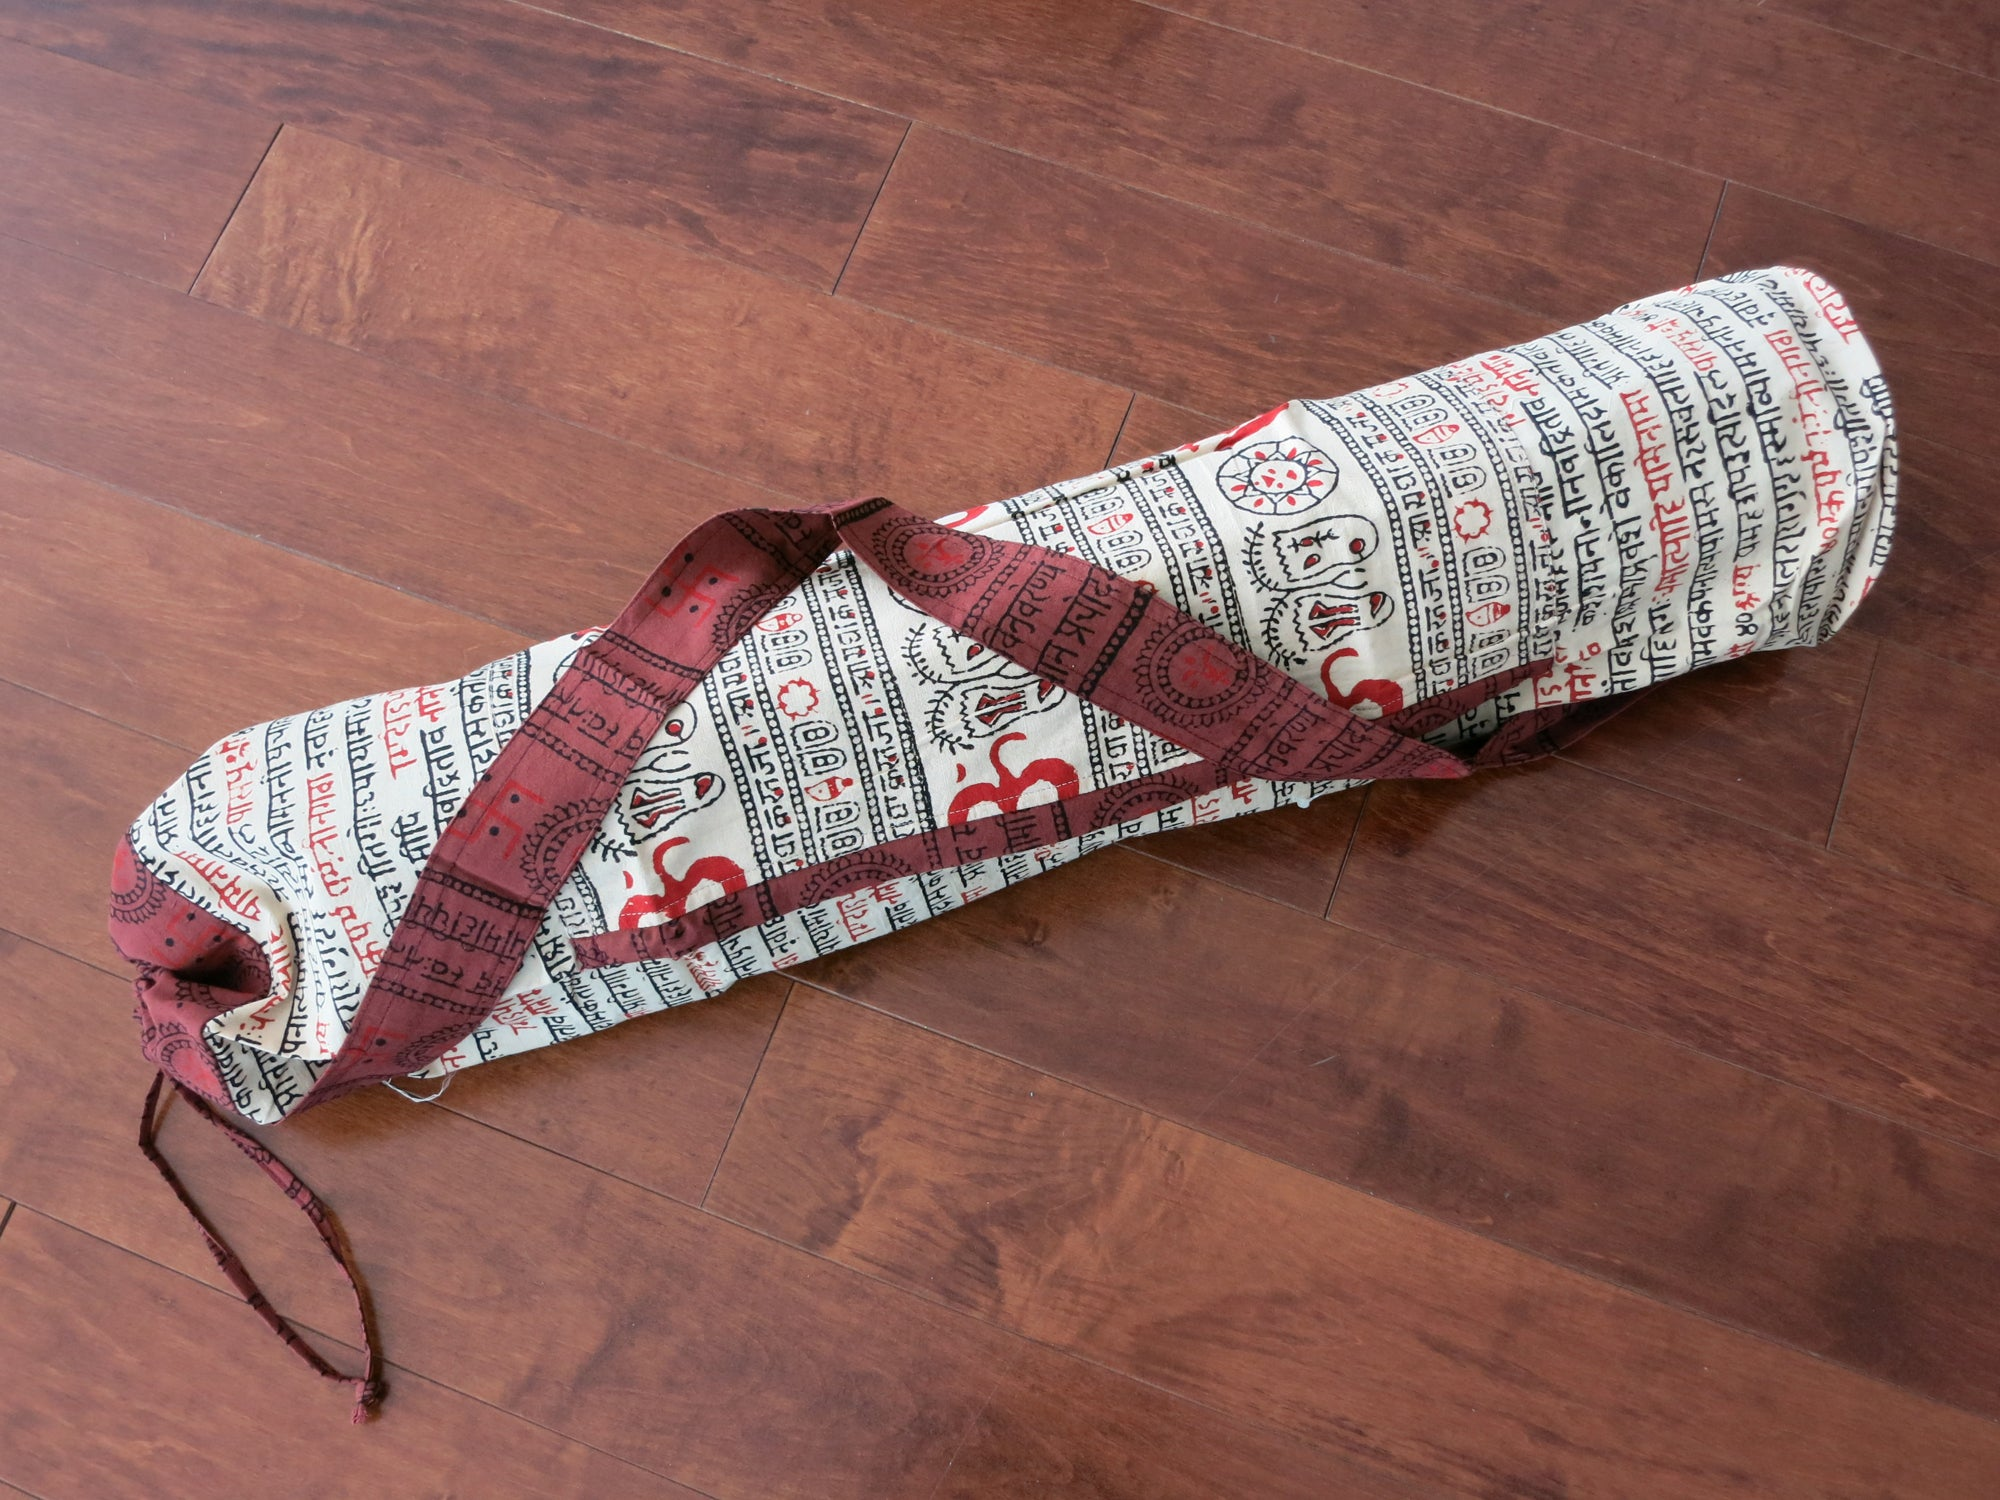 Sanskrit Hand-Printed Yoga Bag